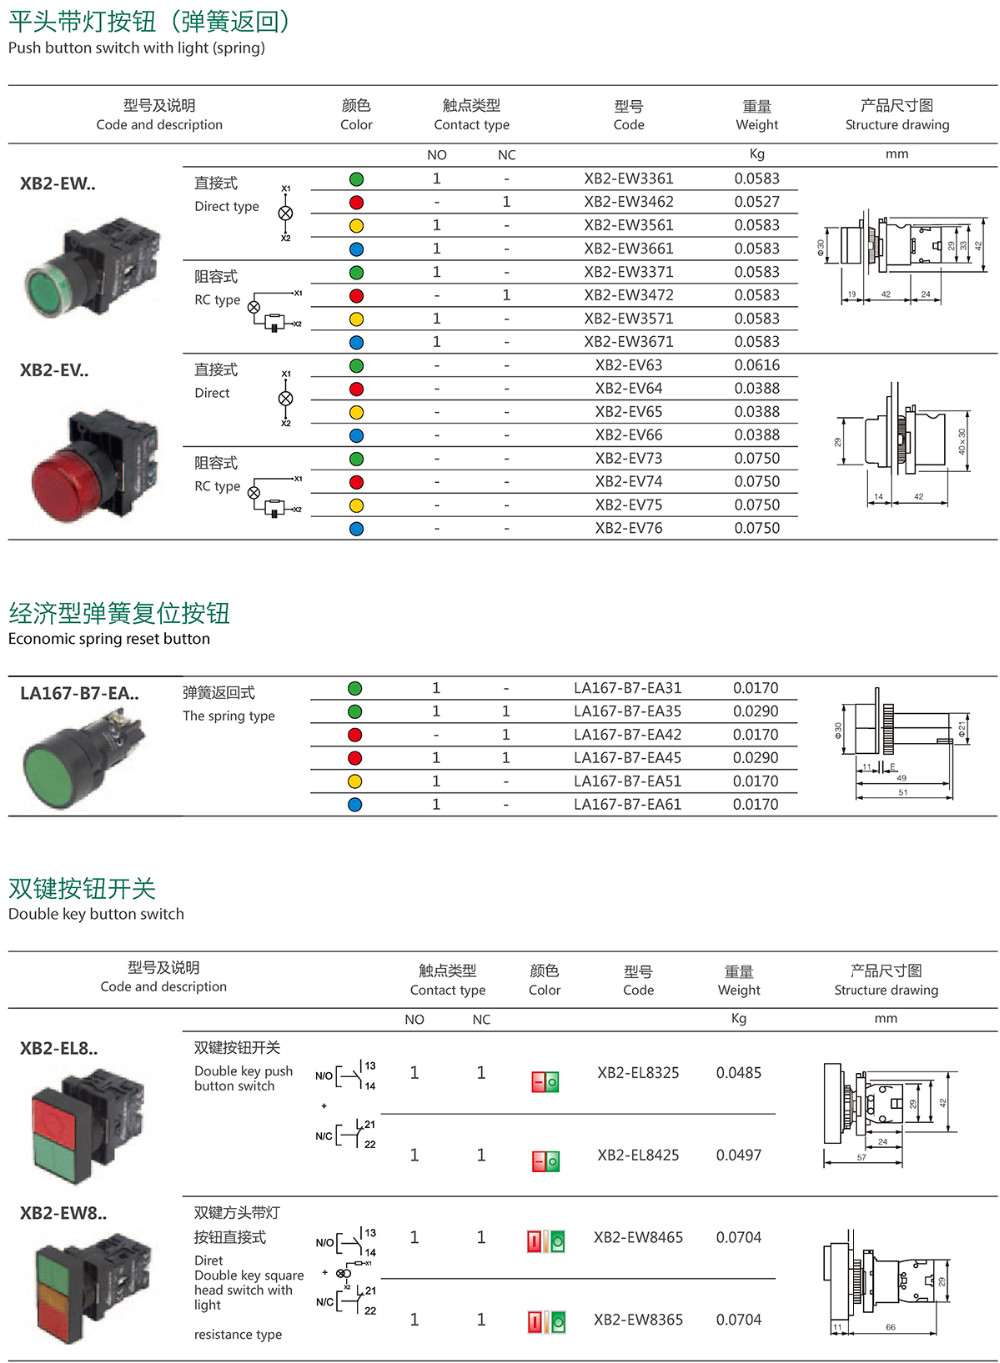 XB2 XB4 Piazza D tipo 40 MM BT42 BT45 60 MM BX42 BX45 NC NESSUN arresto Di Emergenza IP65 IP66 IP67 A Scatto Push Pull push button switch